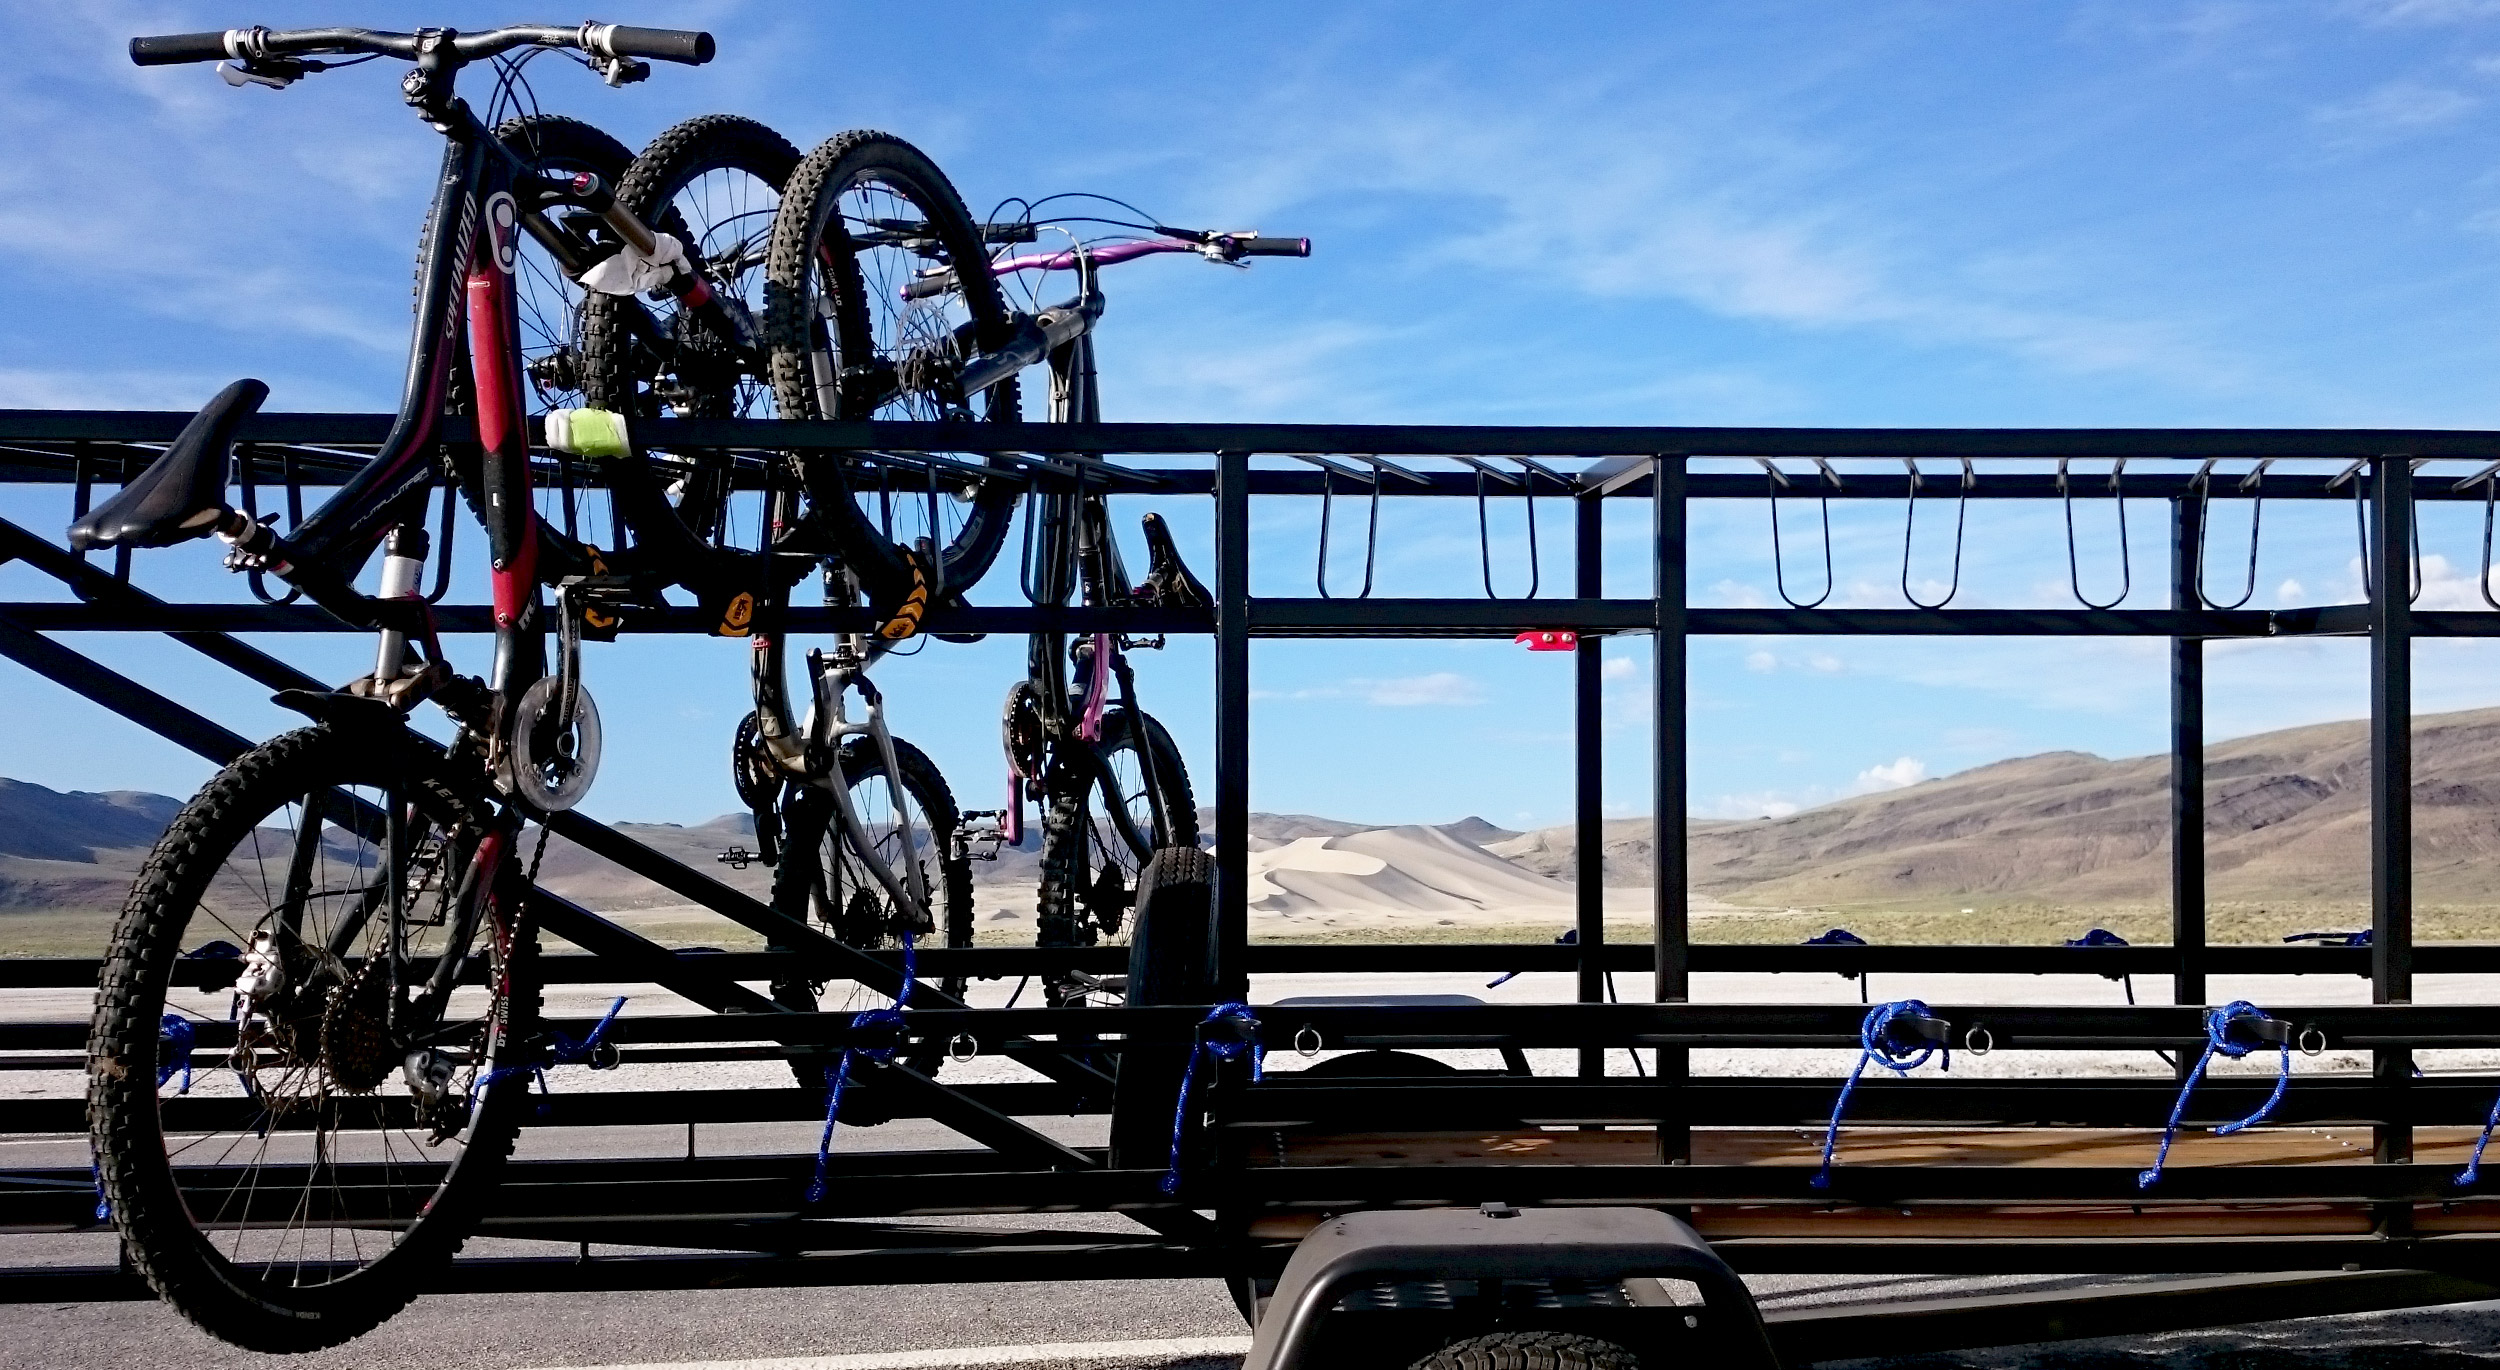 Medium Huckwagons Mountain Bike Shuttle Trailers getting loaded